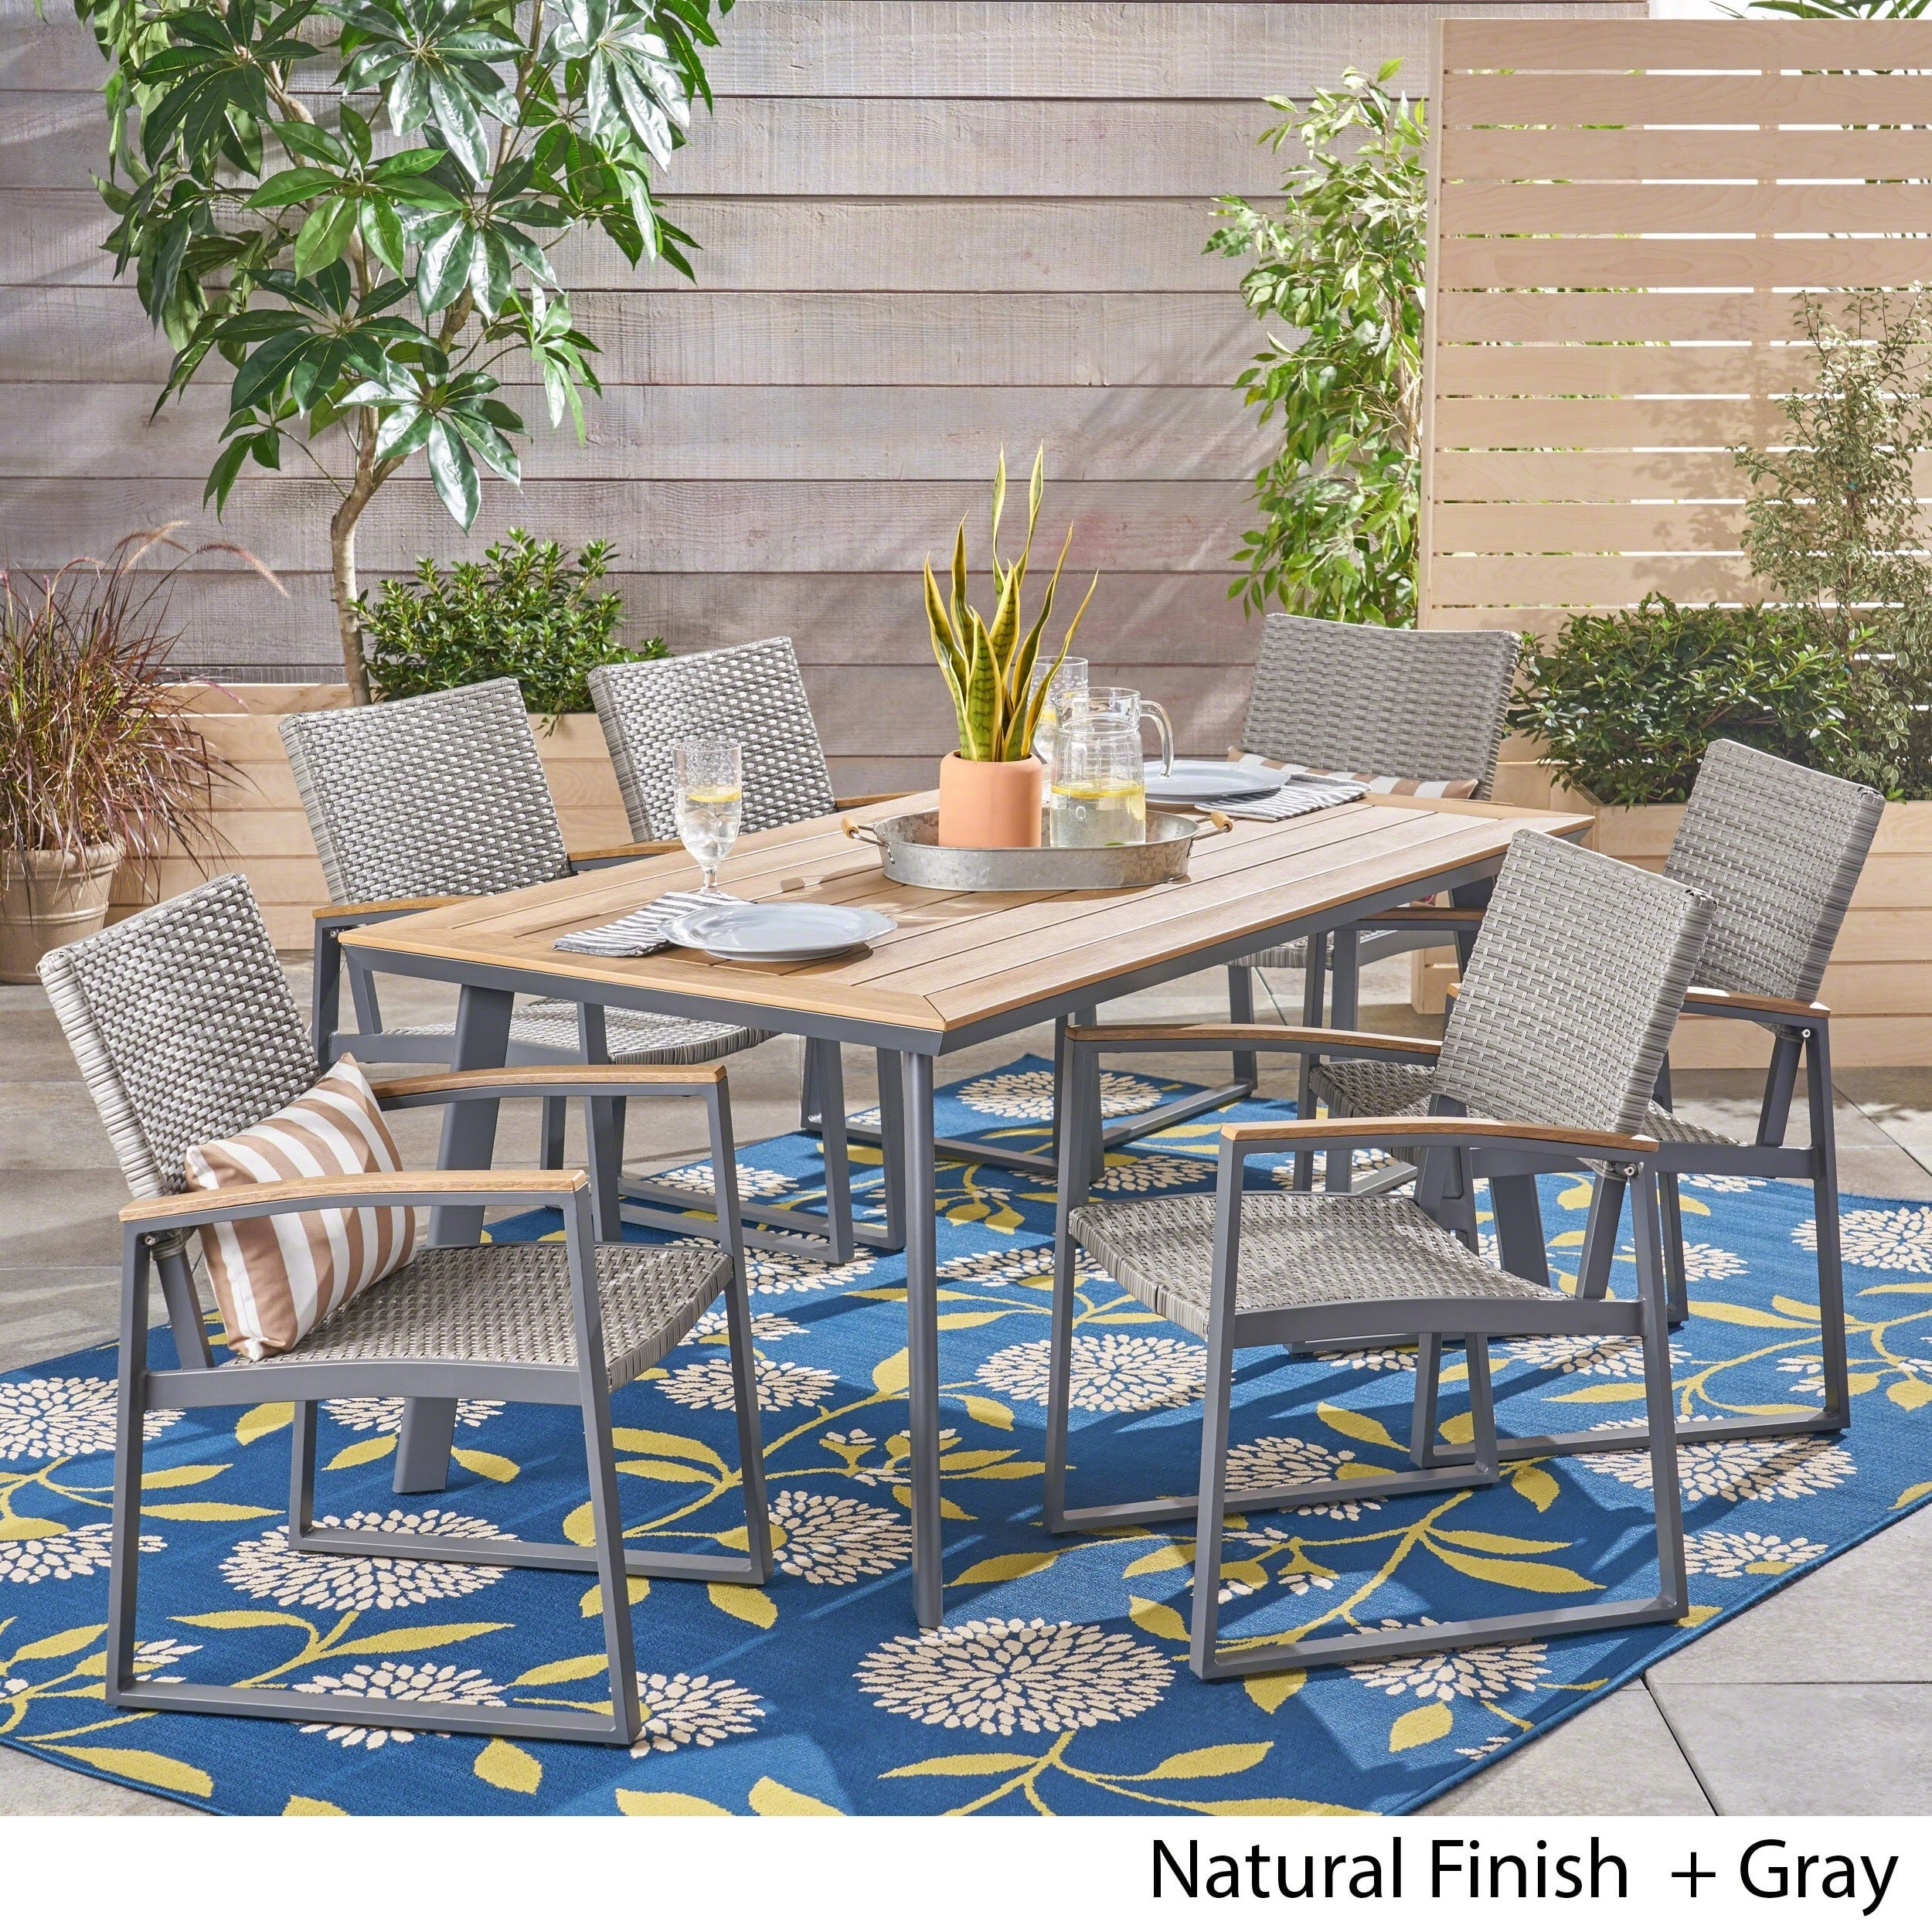 Wondrous Leeds Outdoor 7 Piece Dining Set With Wood Top By Christopher Knight Home Machost Co Dining Chair Design Ideas Machostcouk